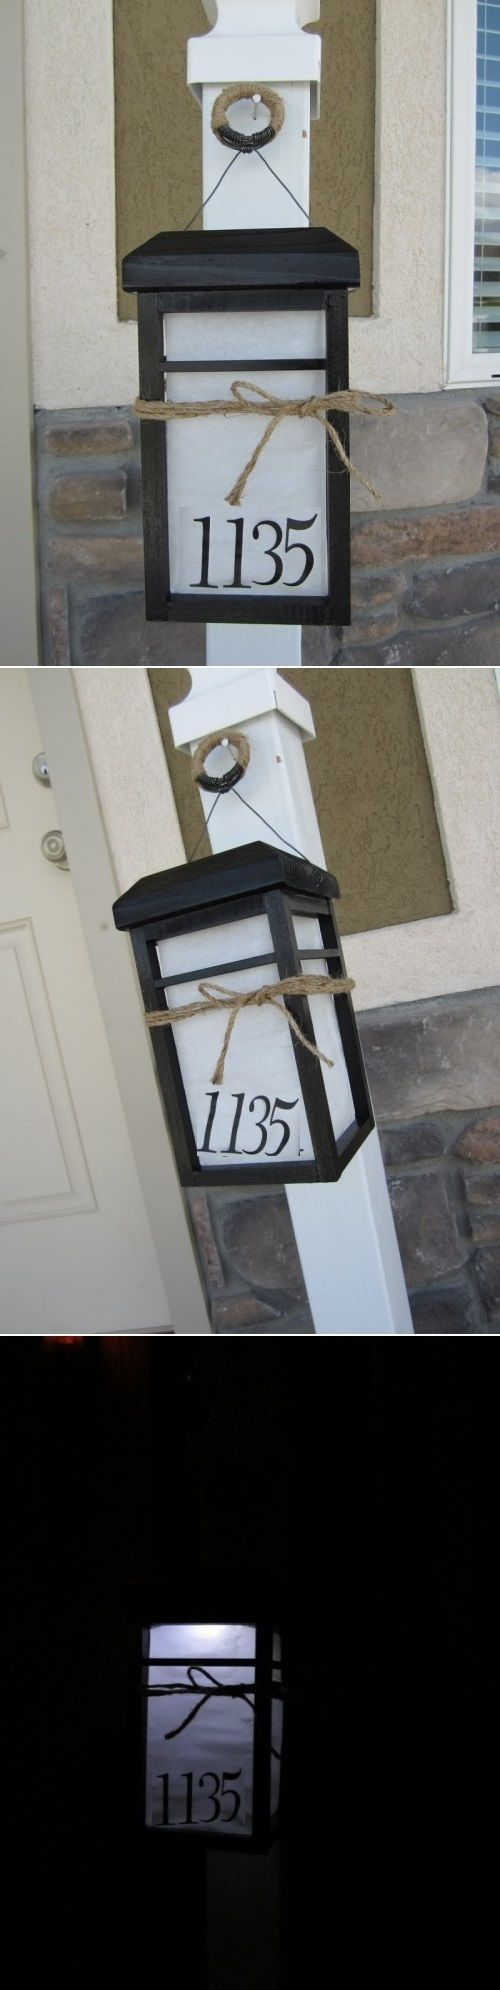 DIY Solar Lantern To Illuminate House Numbers